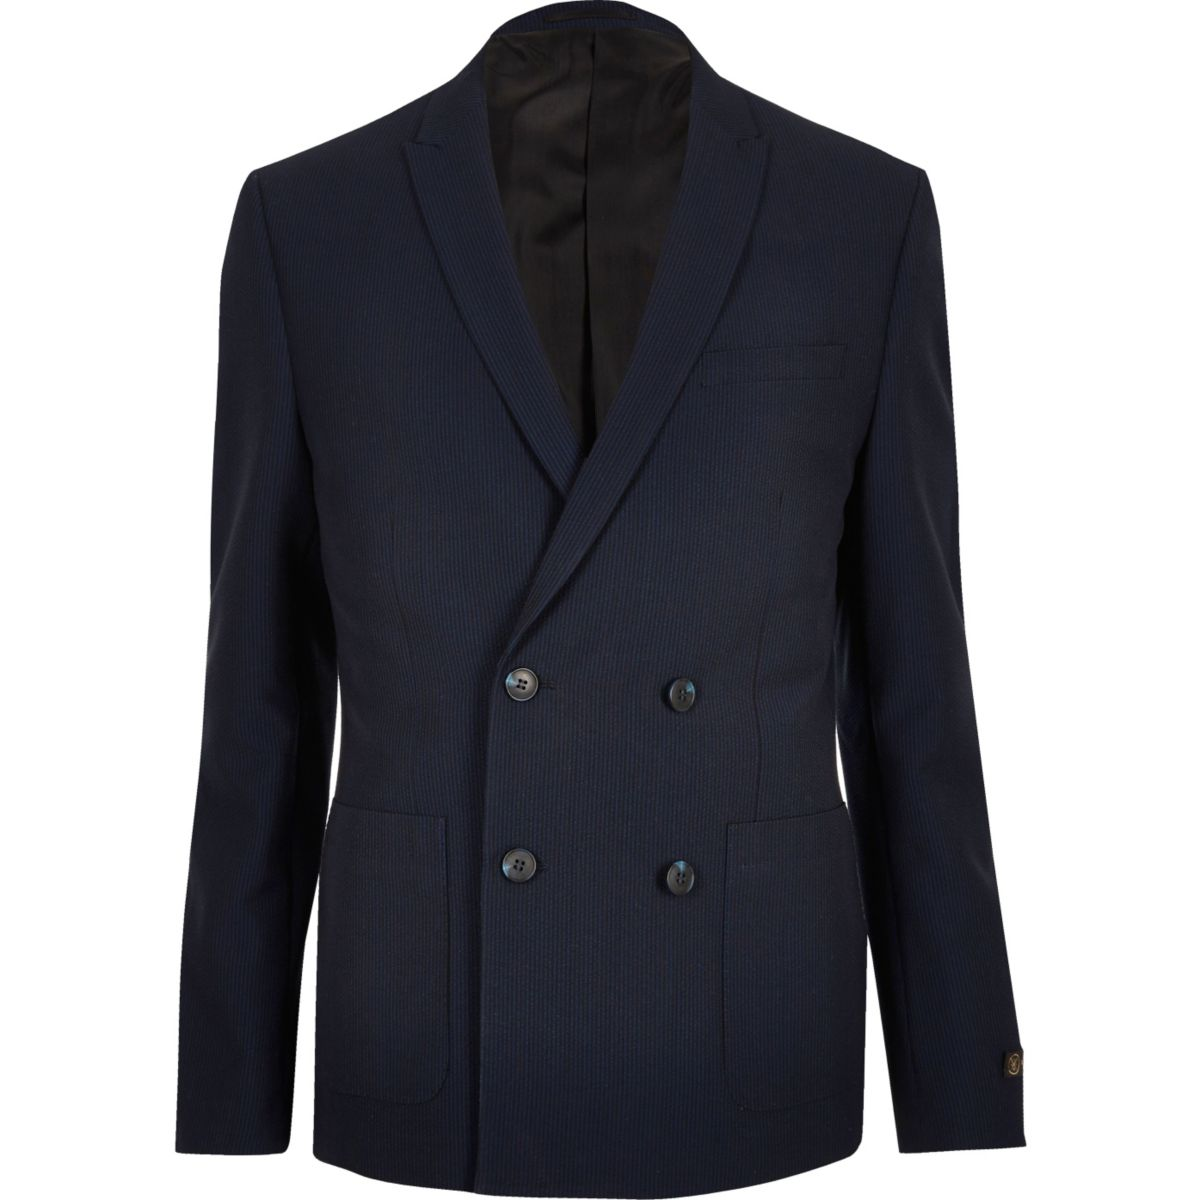 Navy double breasted seersucker suit jacket - Suits - Sale - men